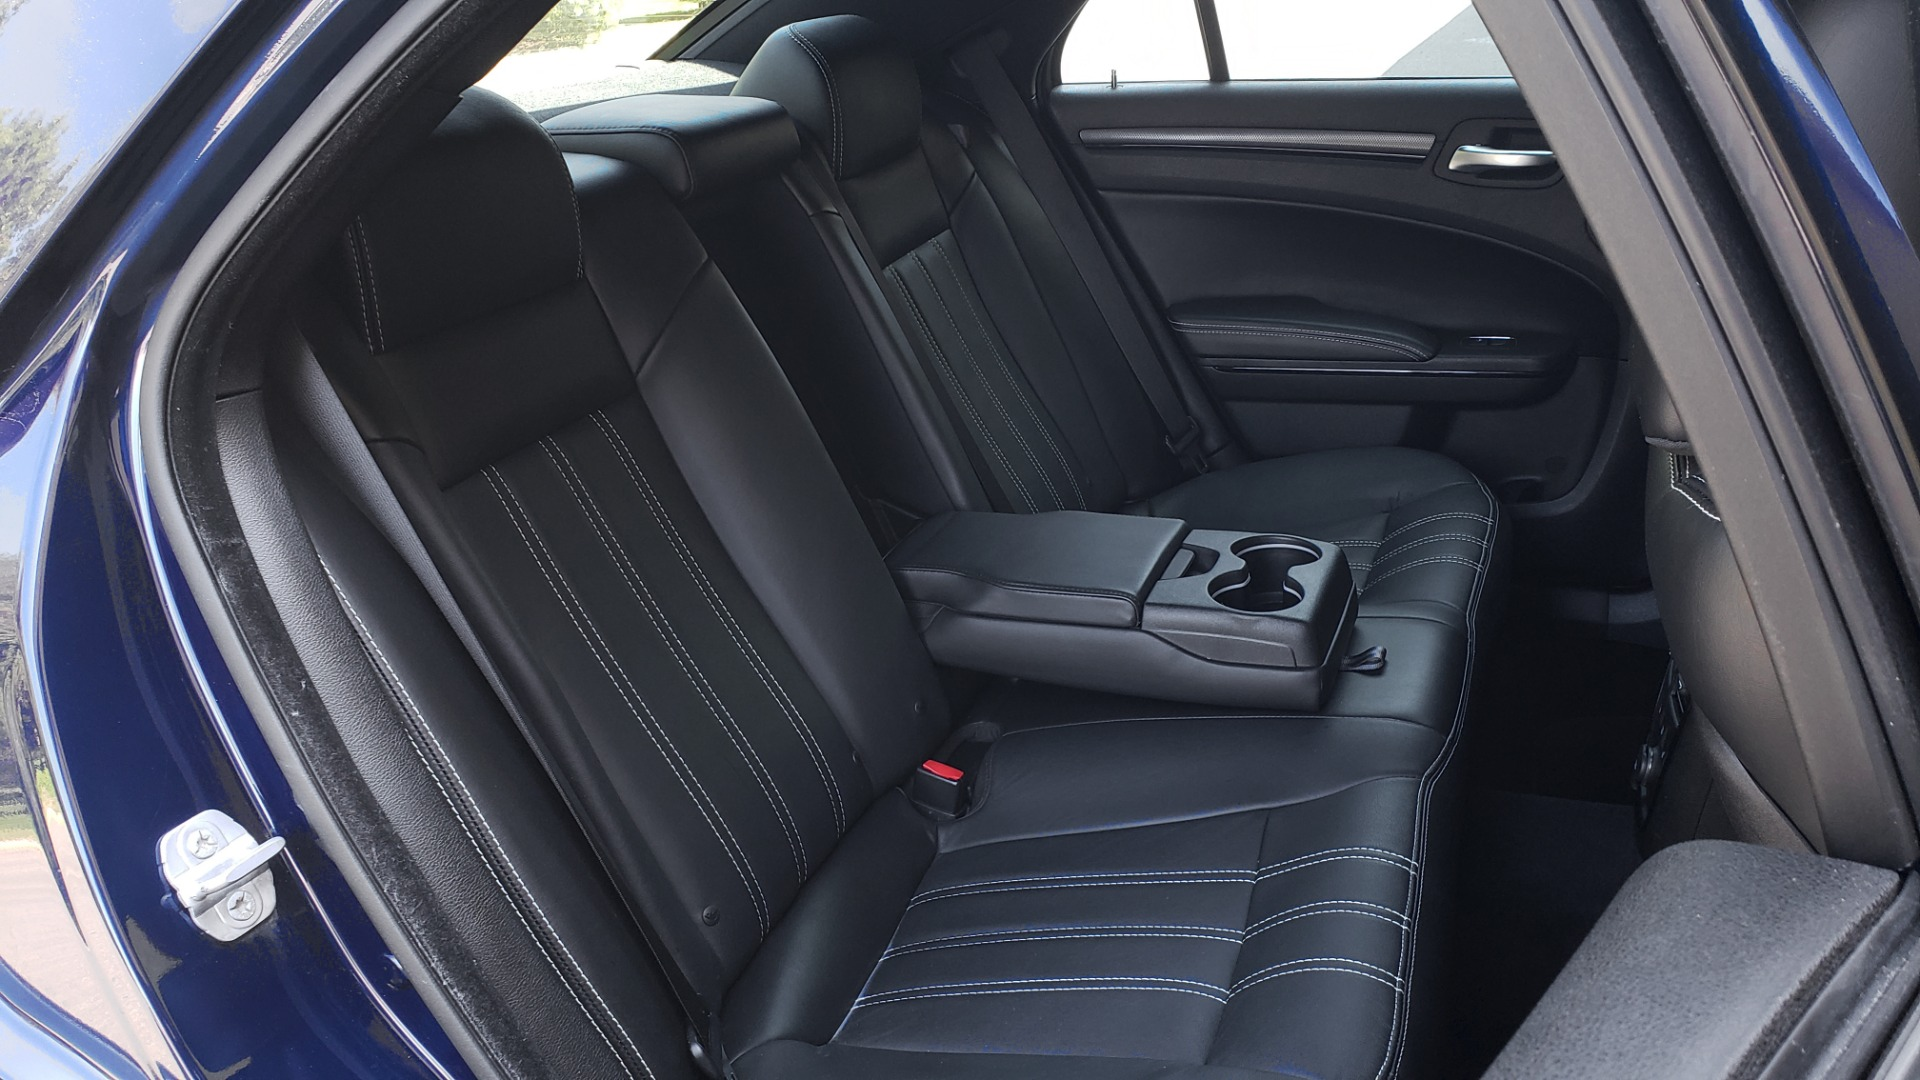 Used 2014 Chrysler 300 S AWD / SAFETY TEC / BLIND SPOT / LIGHT GRP / LUXURY GRP for sale $13,995 at Formula Imports in Charlotte NC 28227 76